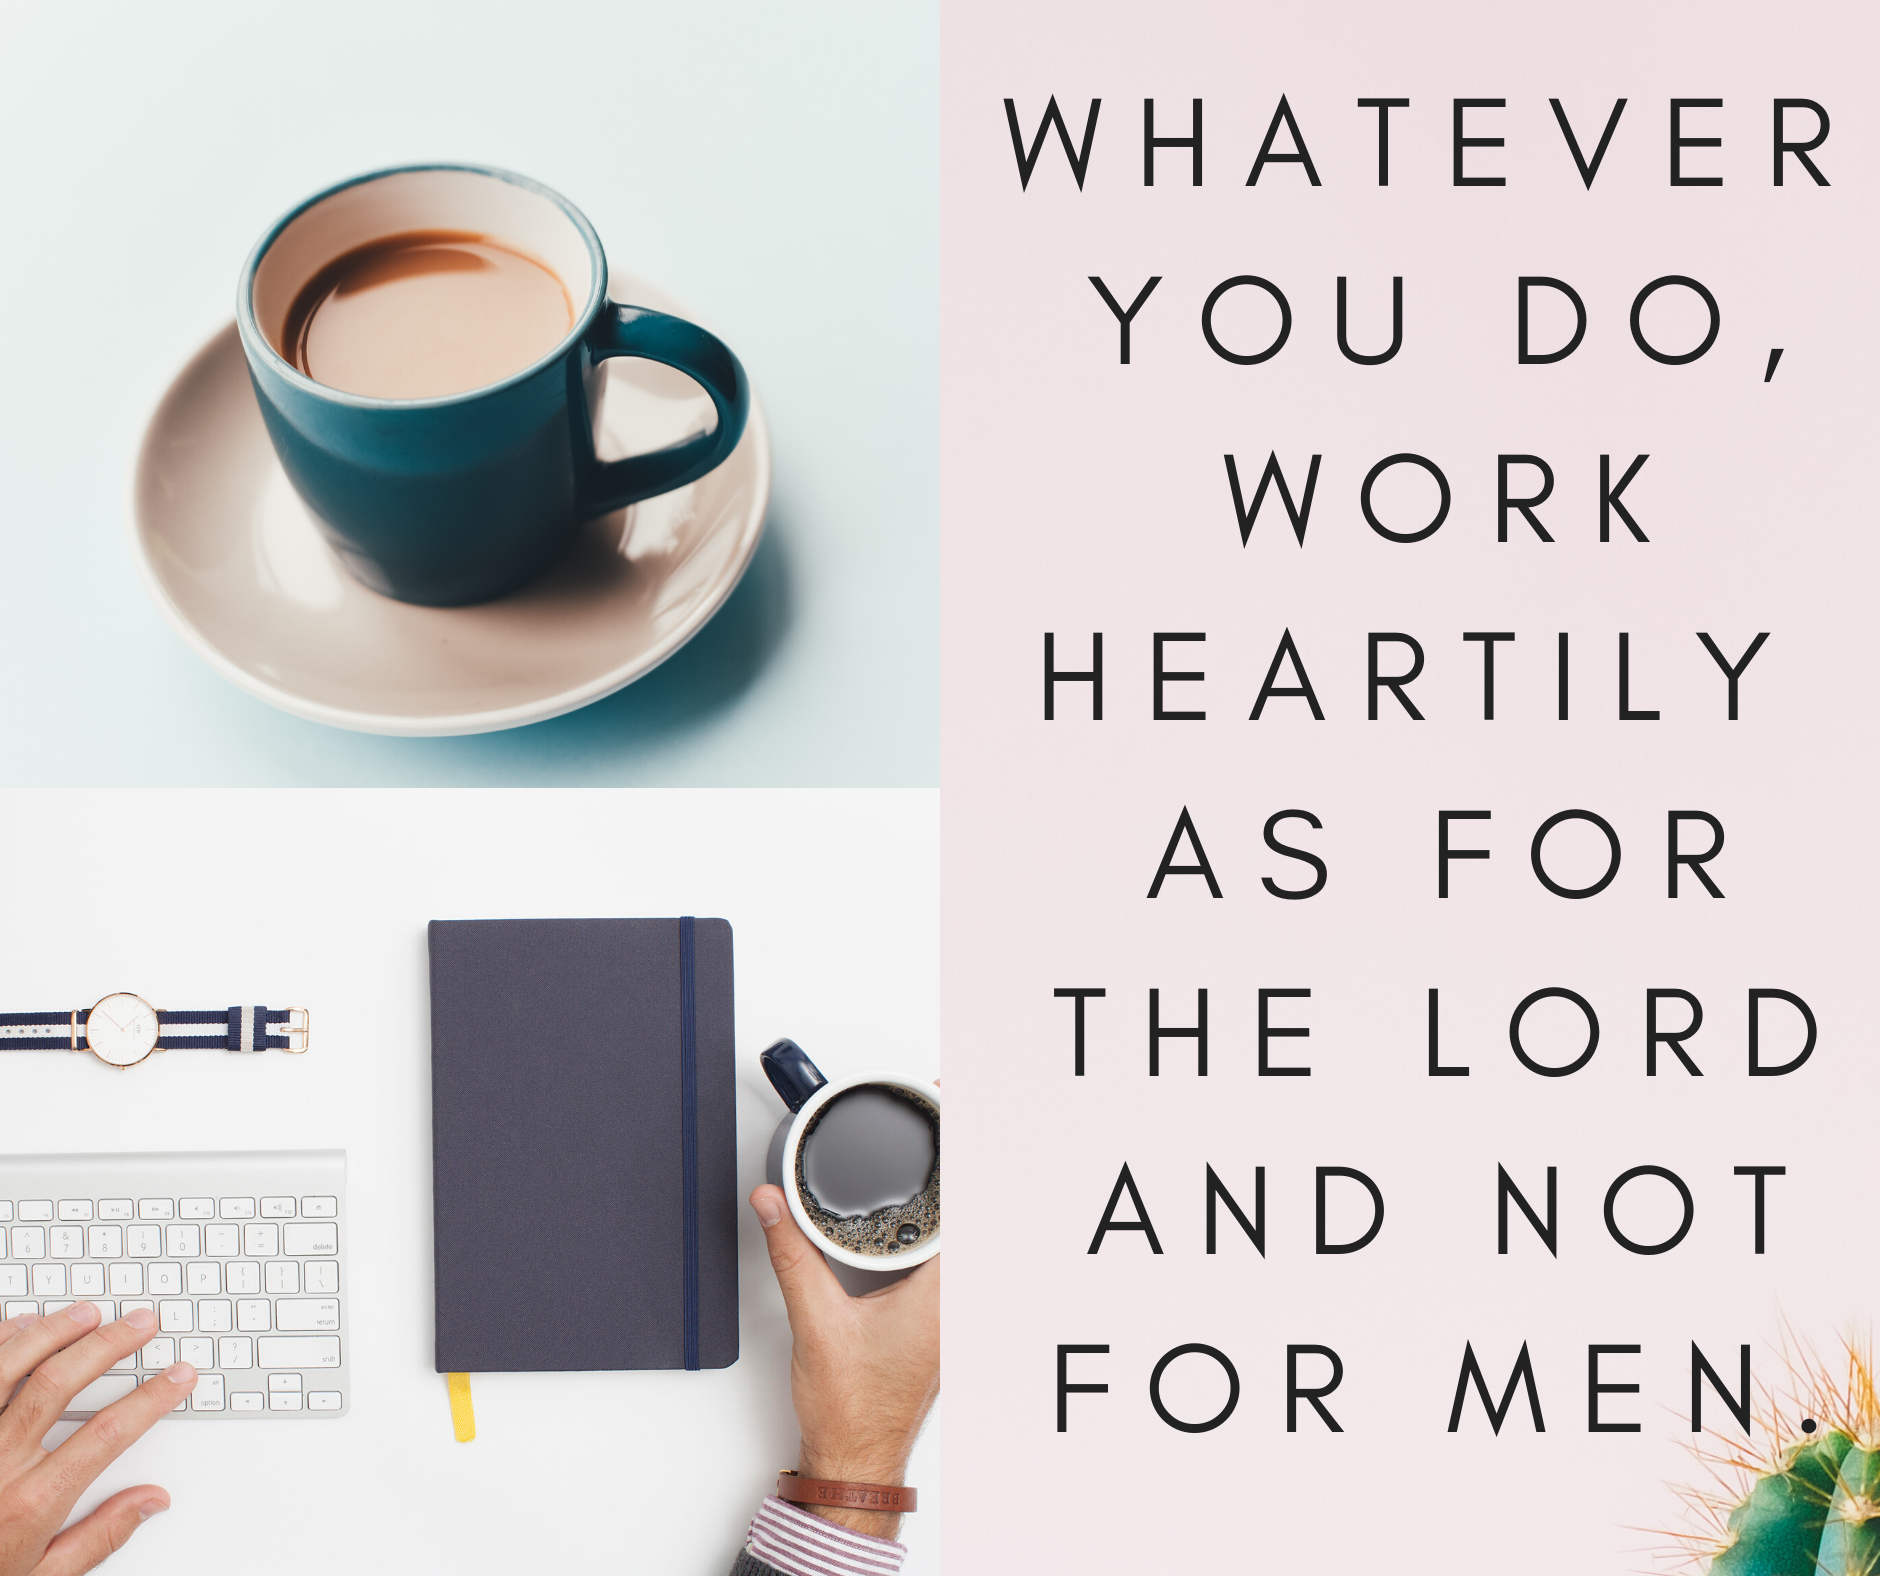 Work heartily as for the Lord